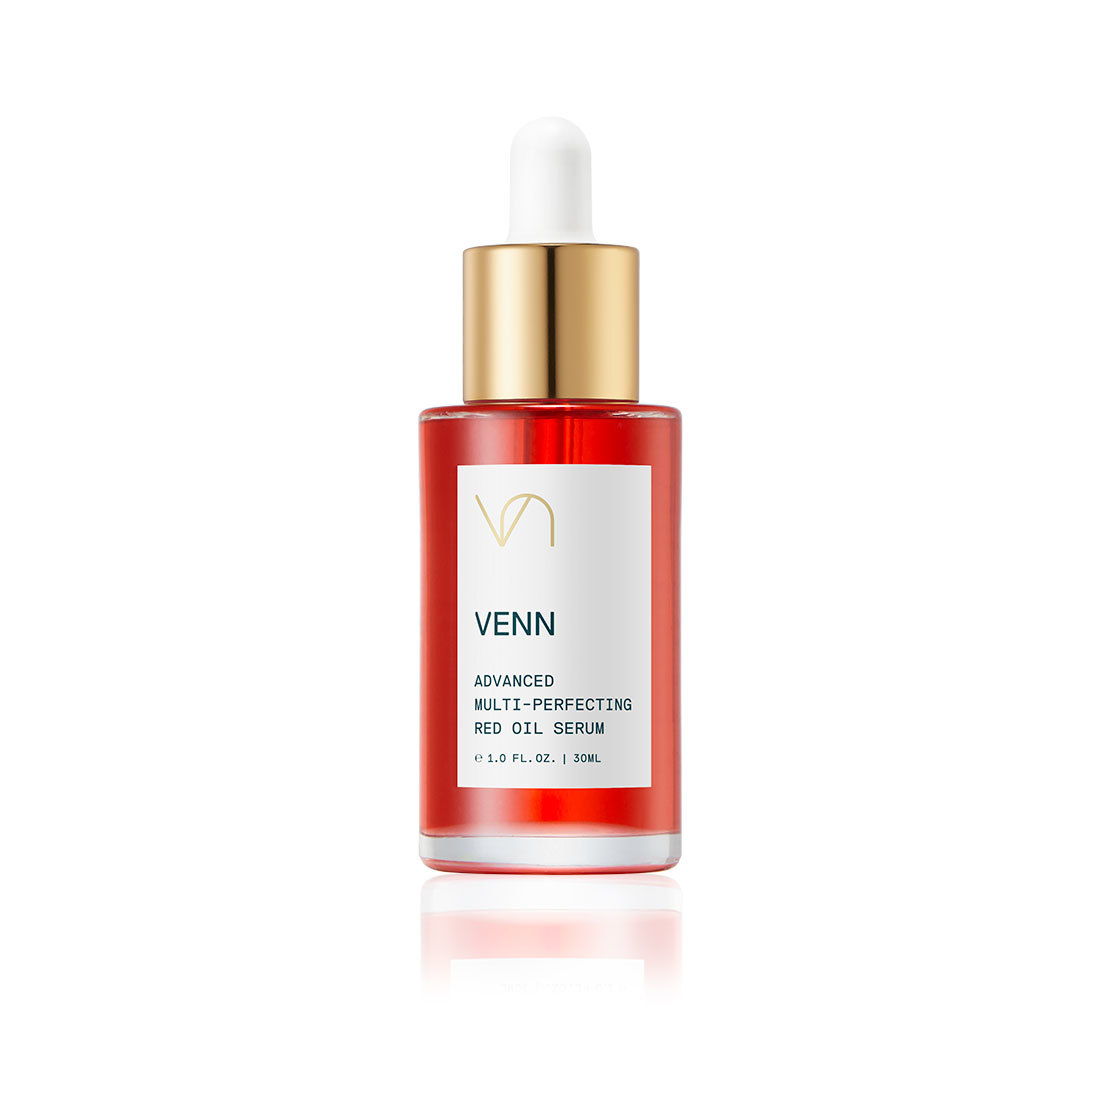 VENN Advanced Multi-Perfecting Red Oil Serum Масло-сыворотка